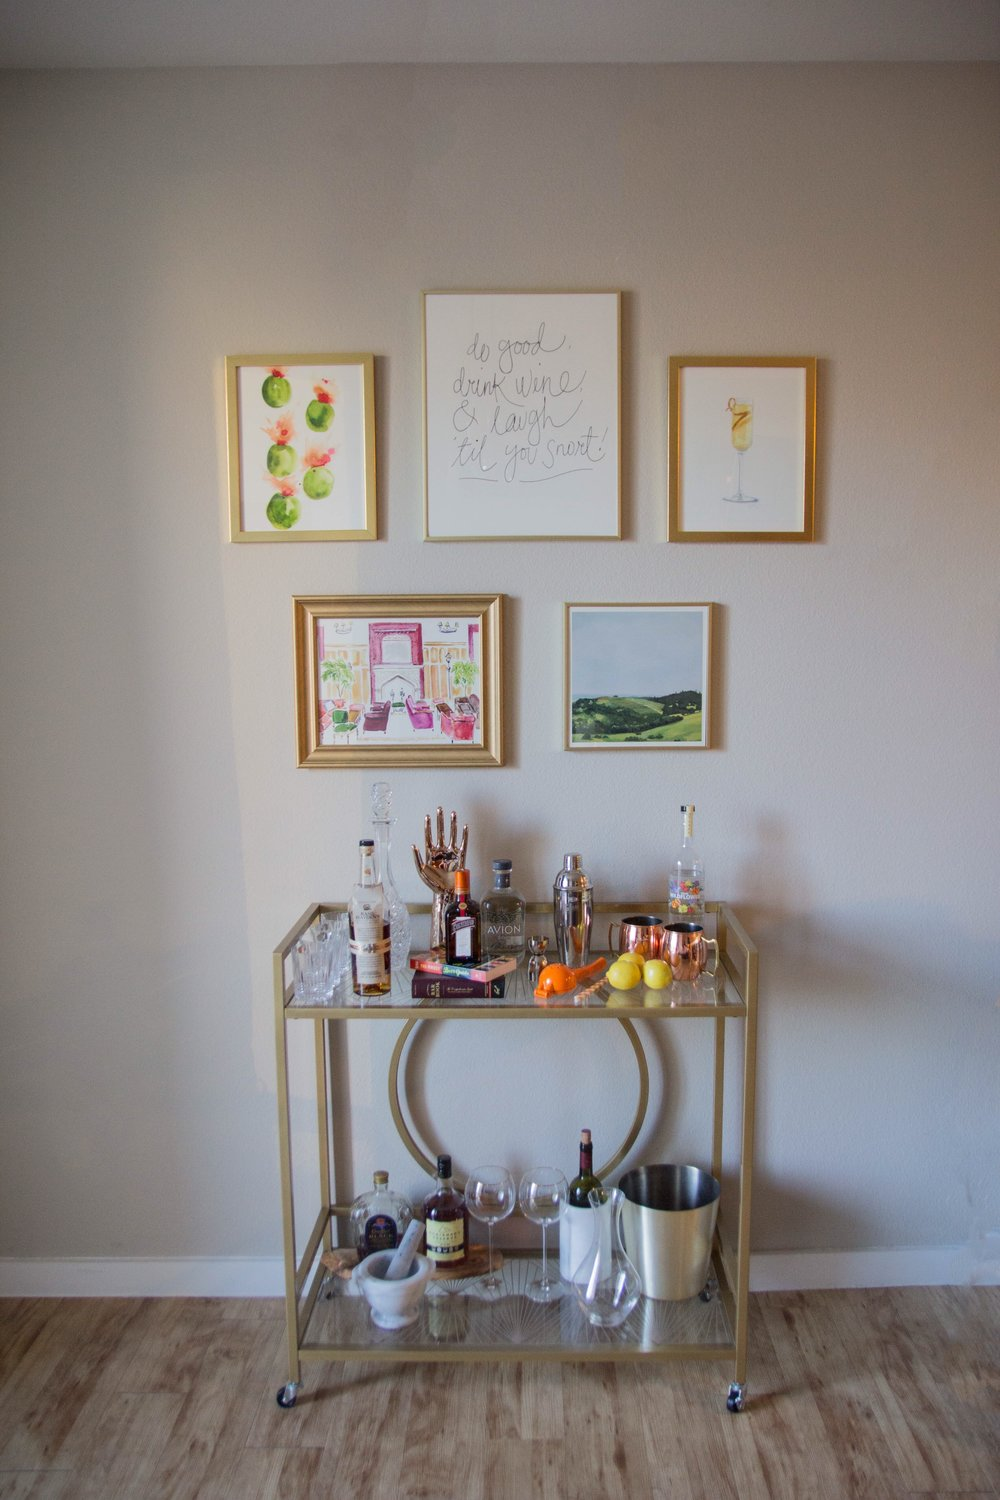 minted art, minted home, how to decorate a bar cart gallery wall, home inspo, wall space, cocktail corner